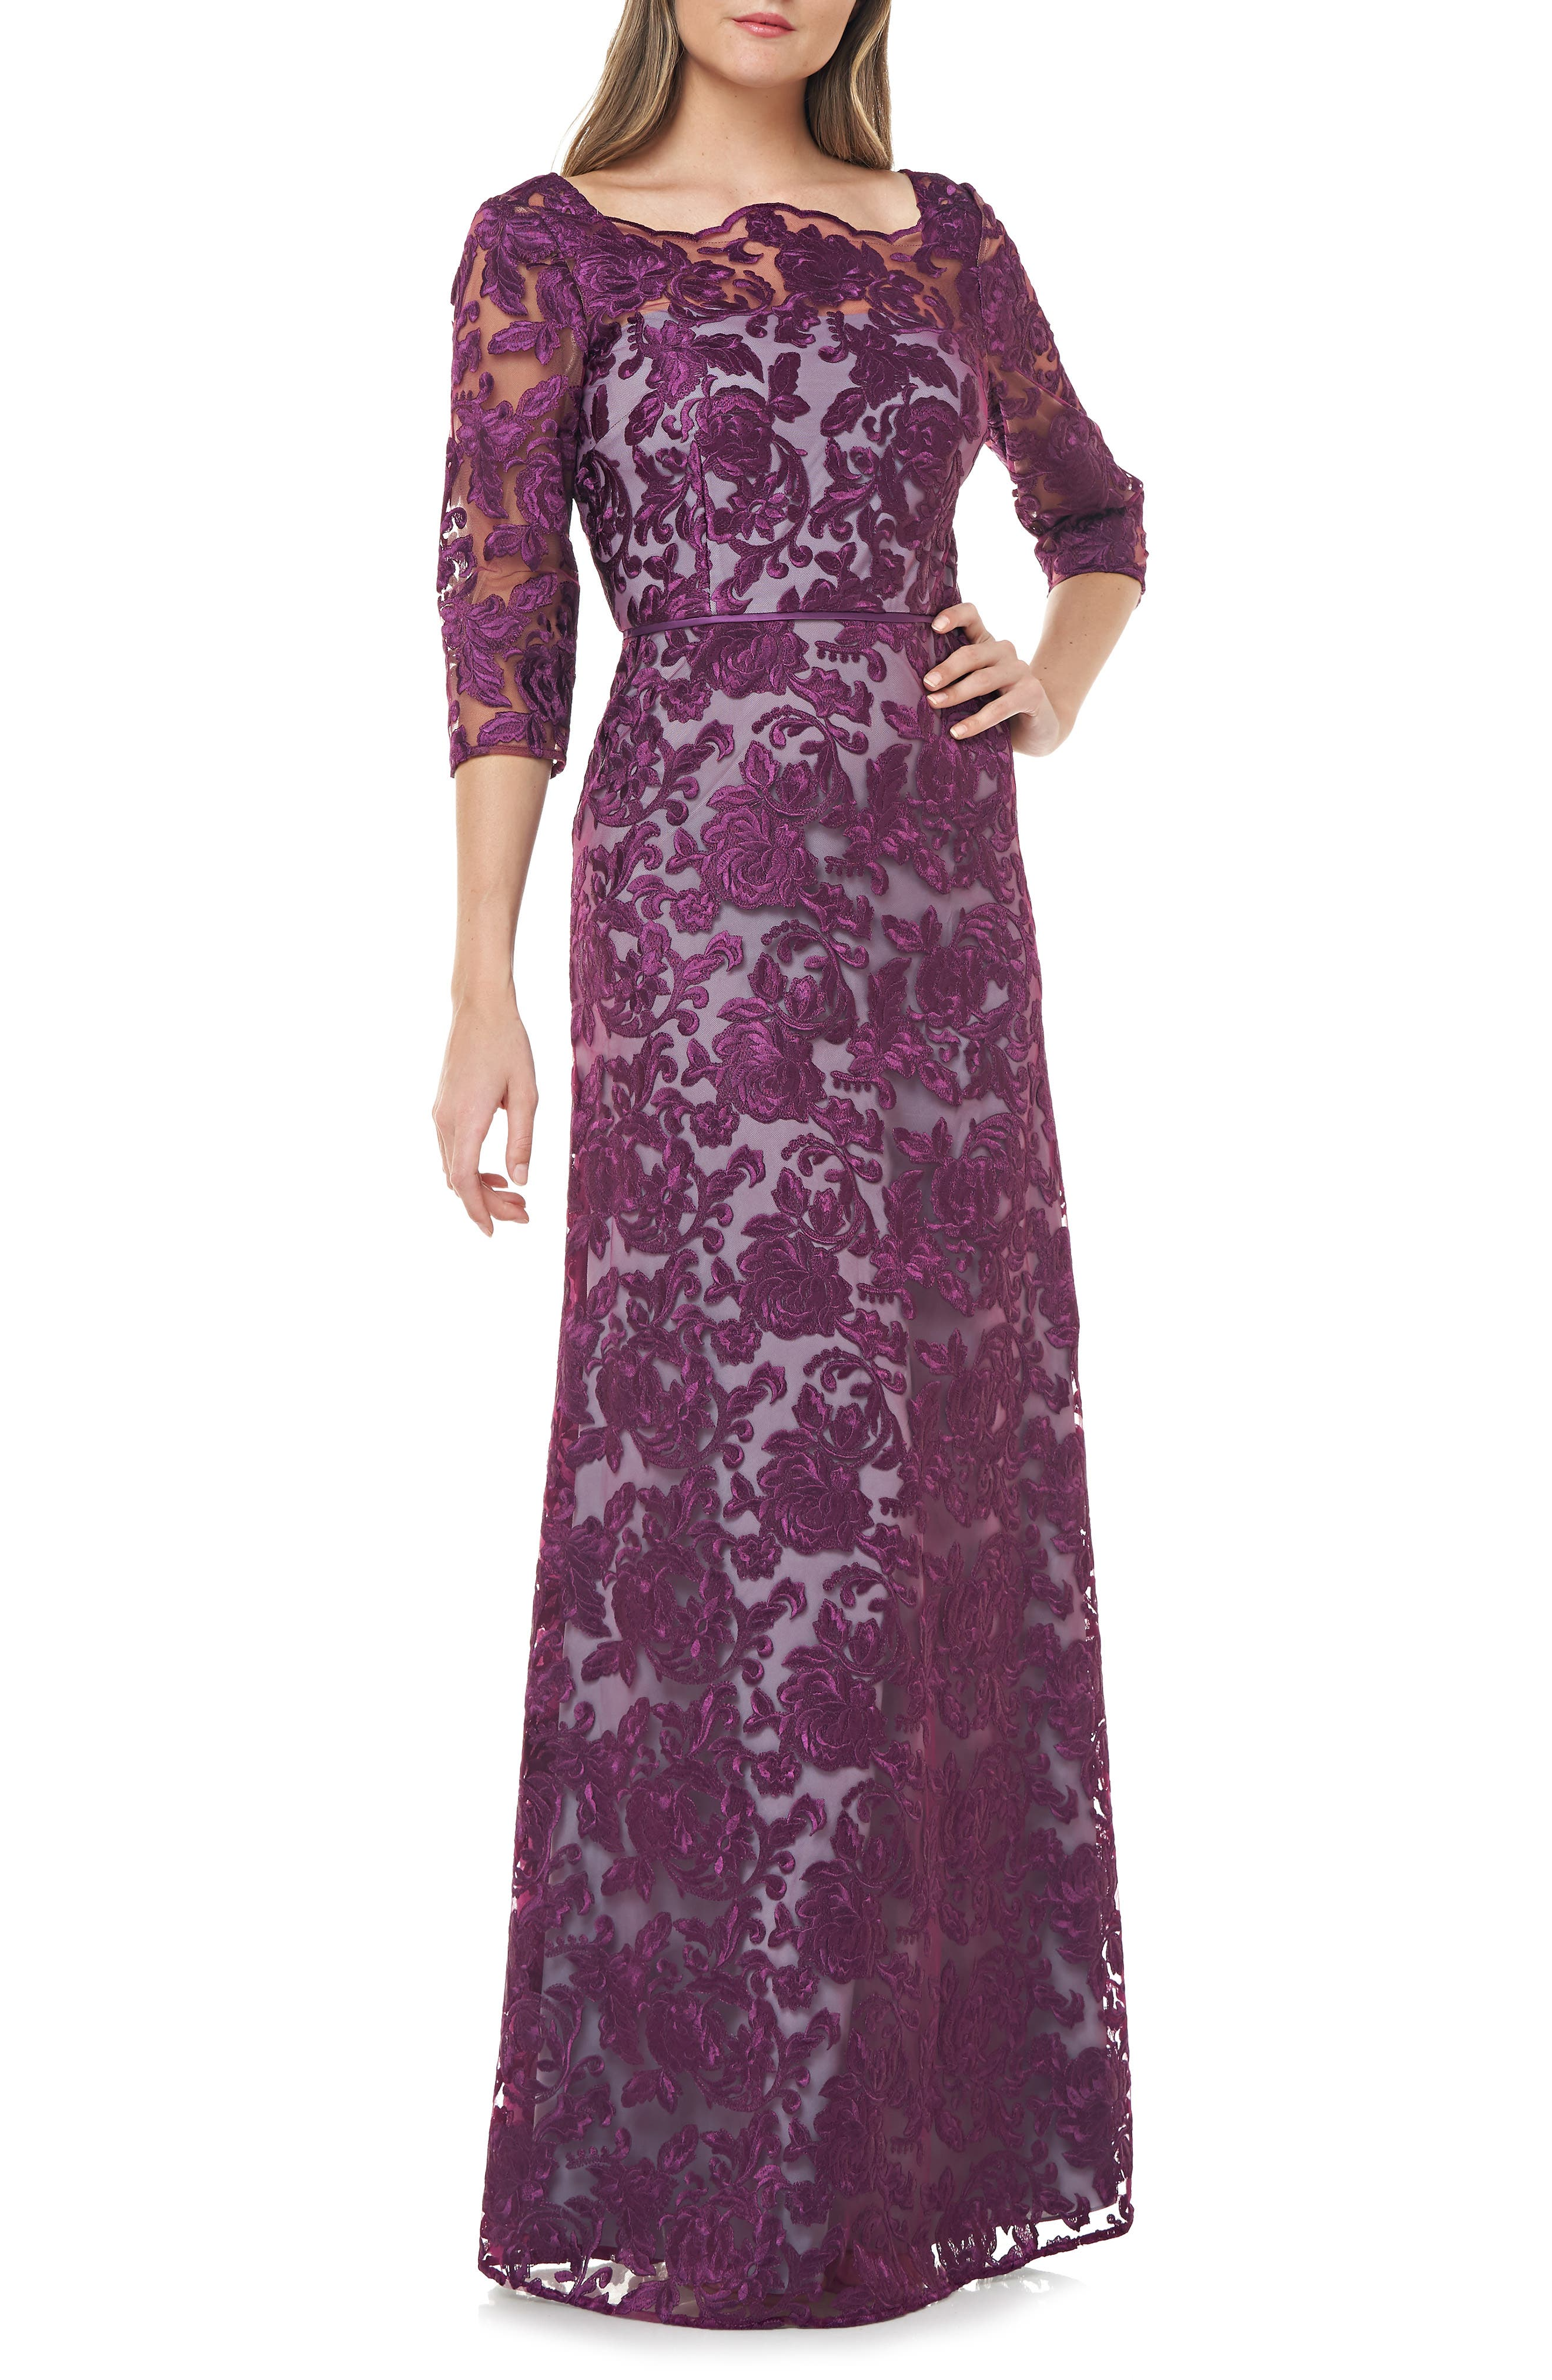 Titanic Dresses & Costumes   1912 Dresses Womens Js Collections Scallop Neck Embroidered Lace Gown Size 12 - Purple $348.00 AT vintagedancer.com